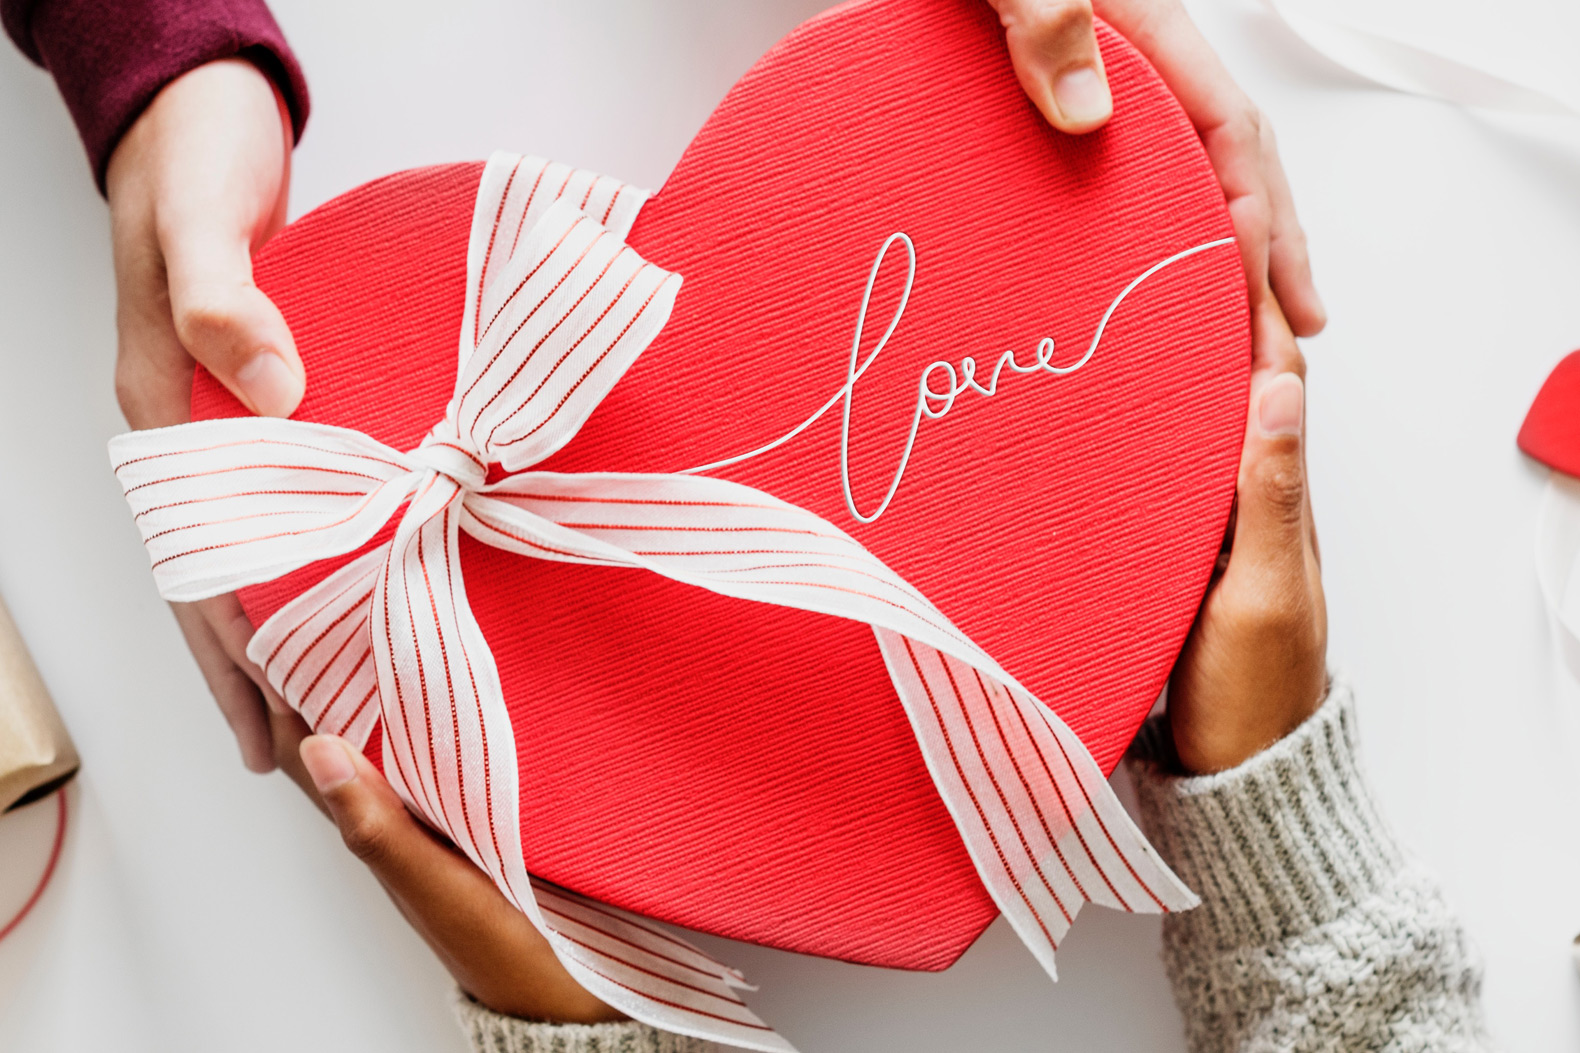 Spoil your lover with presents from our eco-friendly Valentine's Day gift guide